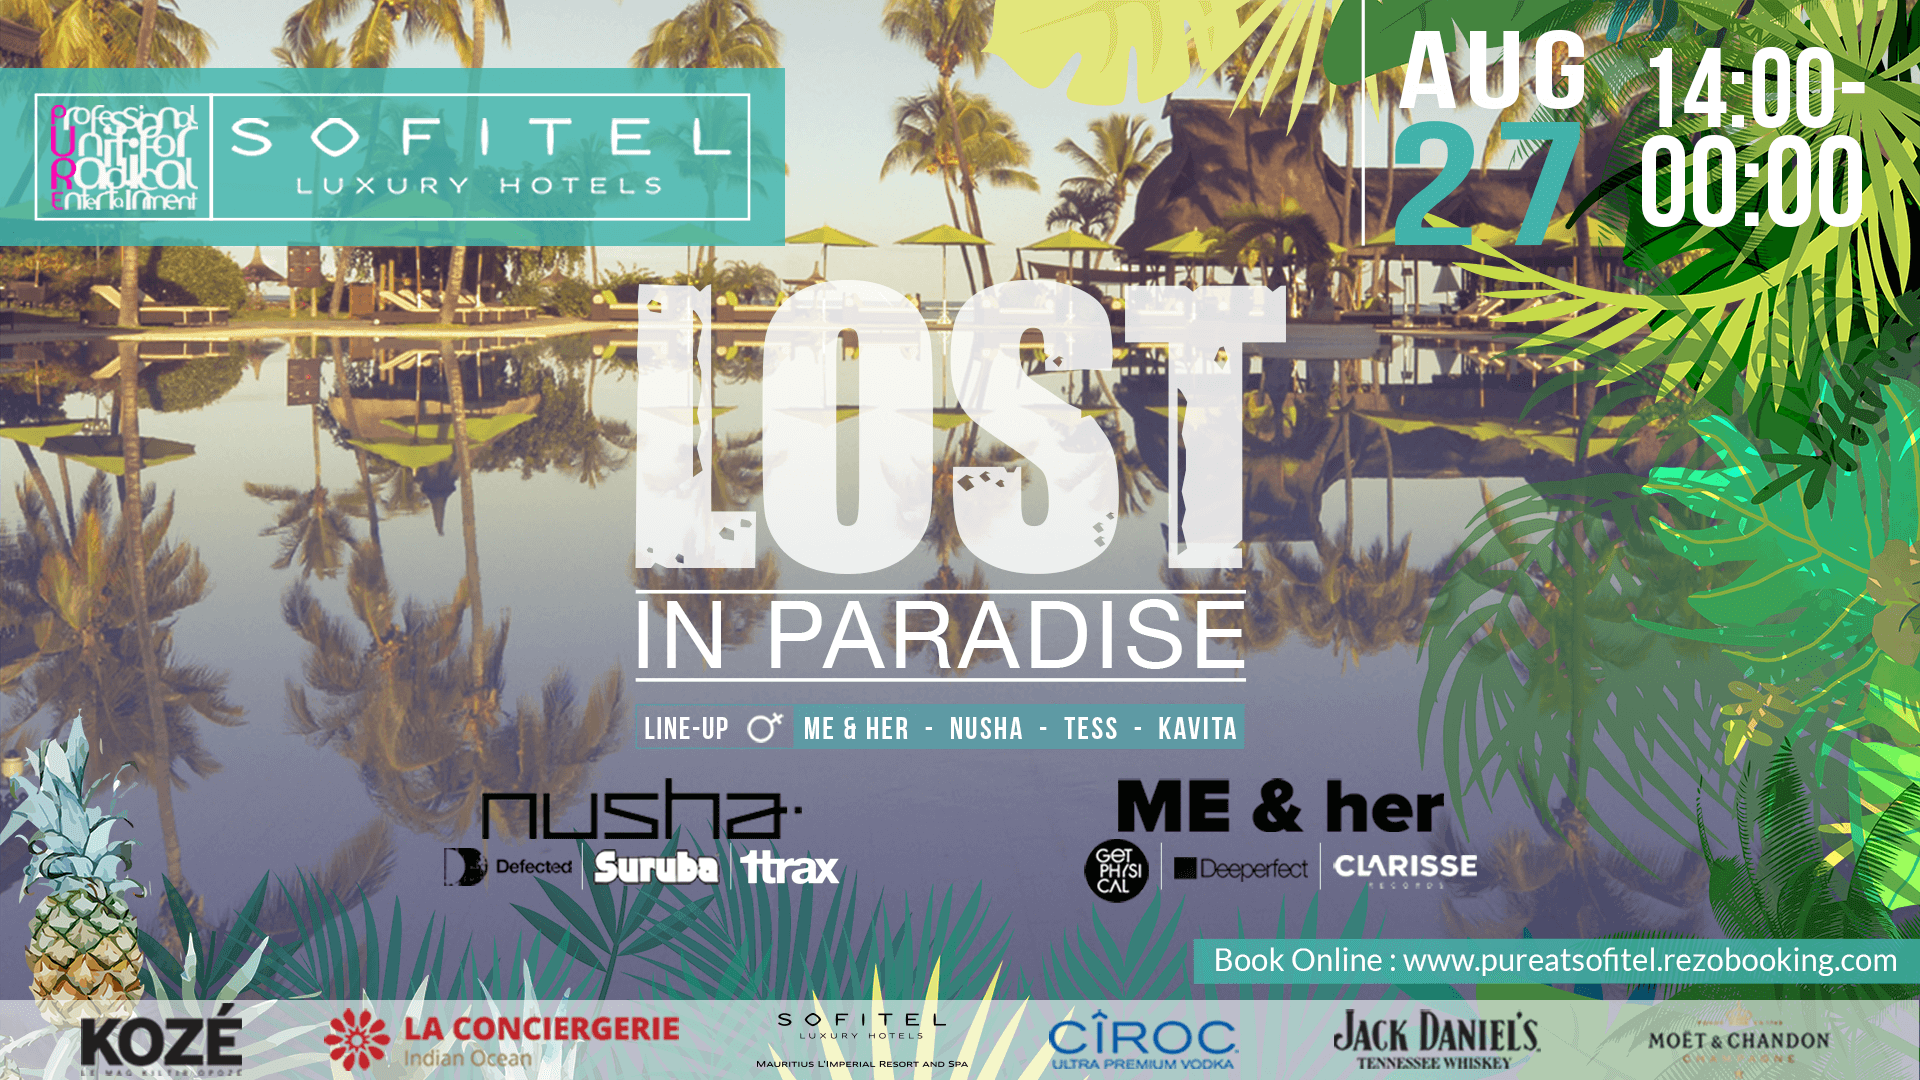 lost-in-paradise-1920-X-1080